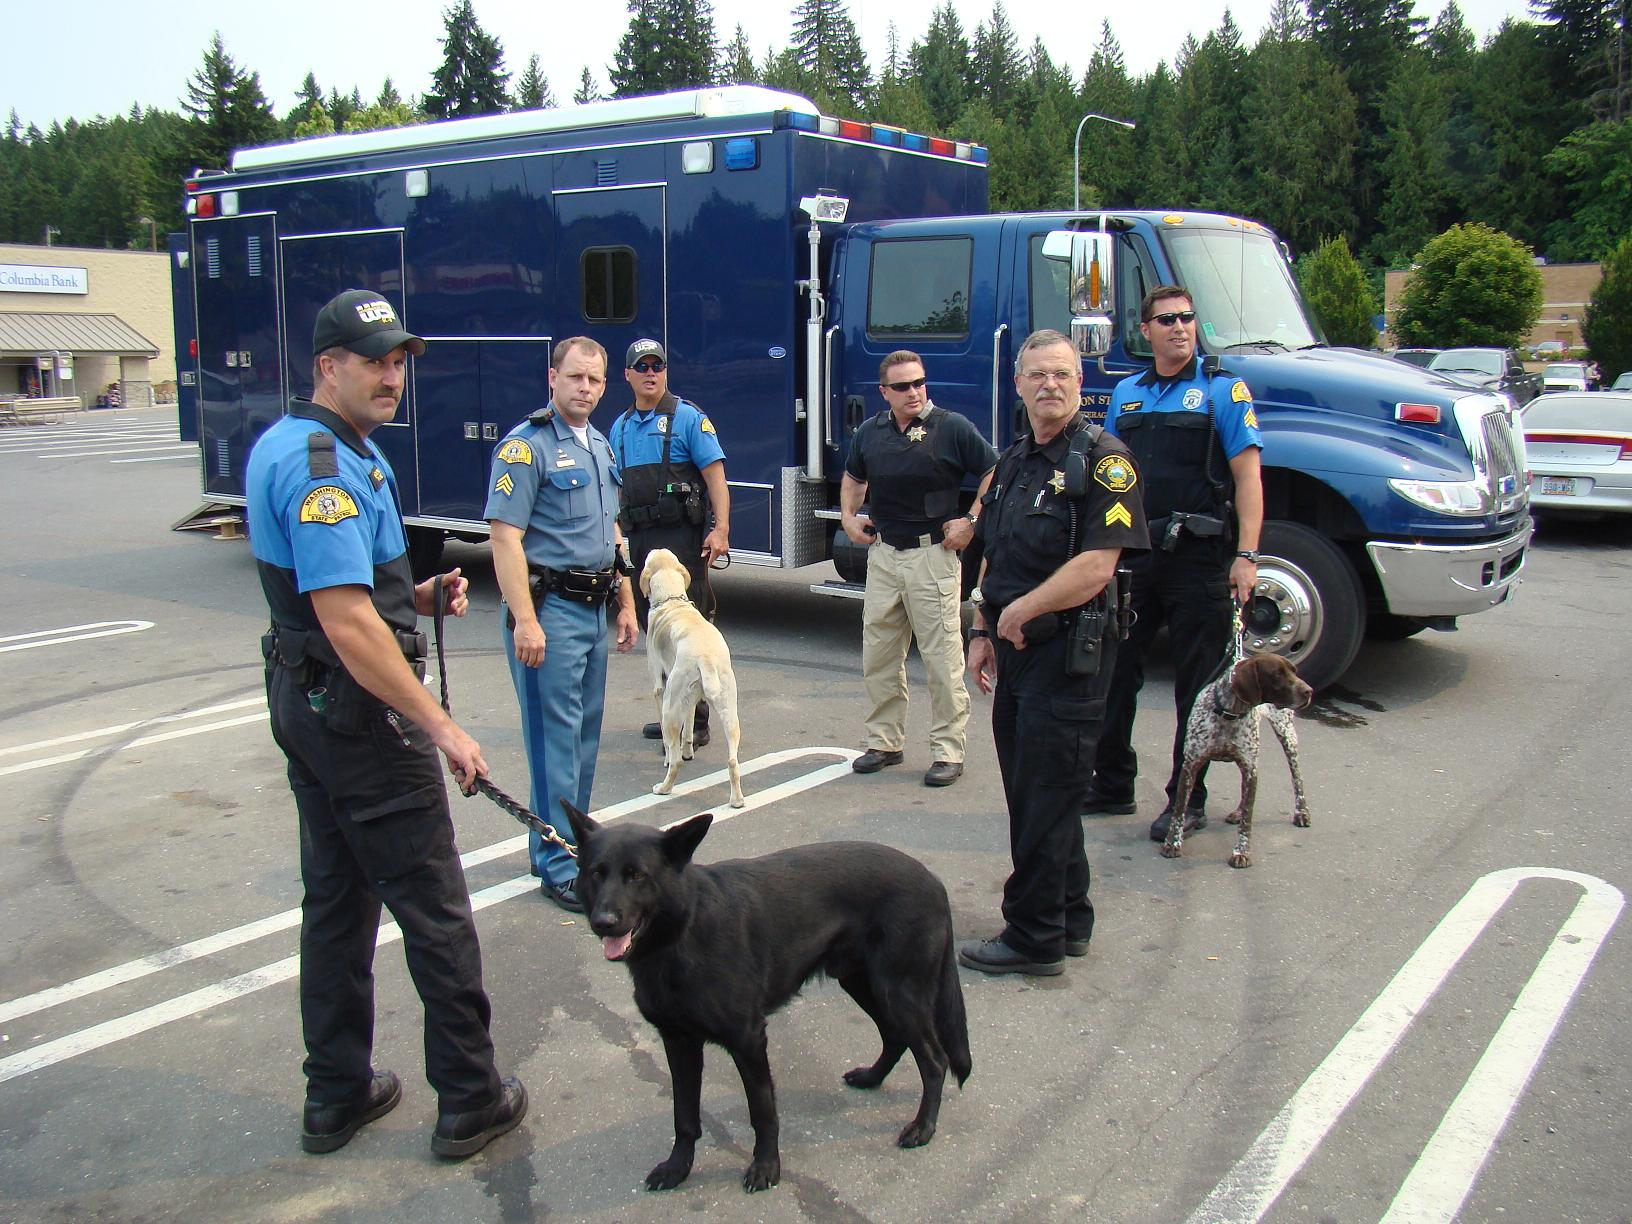 The Mason County Sheriff's Office responded along with members of the Washington State Patrol Multiagency Bomb Squad, several Washington State Patrol bomb sniffing K-9, and members of the Mason County Fire District #2 Firefighters and Fire Aid Paramedics.